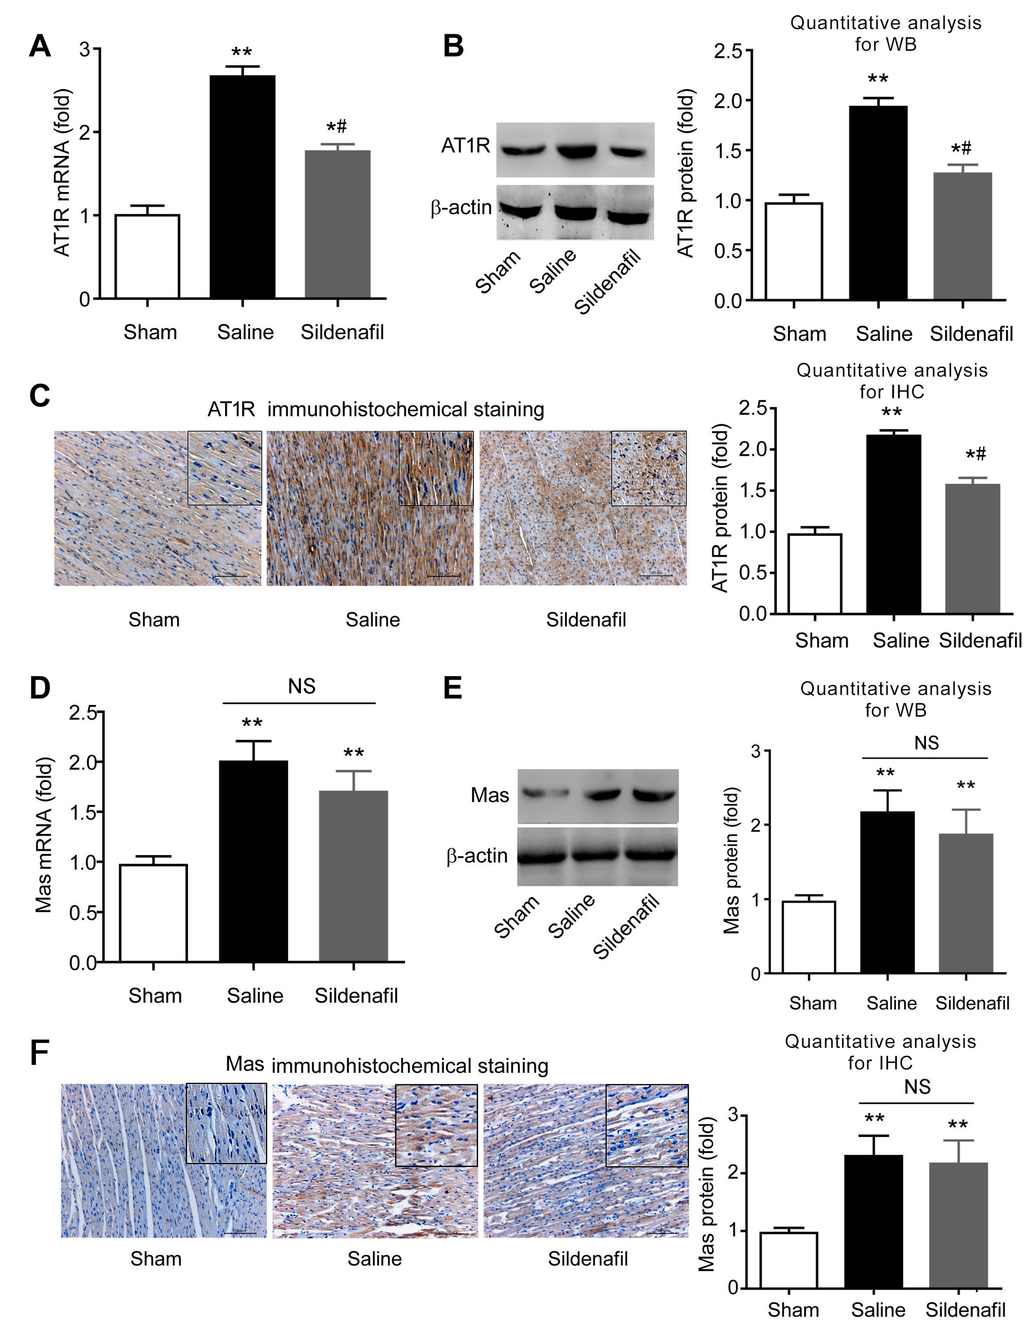 IJMS - Free Full-Text - Sildenafil Protects against Myocardial Ischemia-Reperfusion Injury Following Cardiac Arrest in a Porcine Model: Possible Role of the Renin-Angiotensin System - HTMLSildenafil Protects against Myocardial Ischemia-Reperfusion Injury Following Cardiac Arrest in a Porcine Model: Possible Role of the Renin-Angiotensin System - 웹